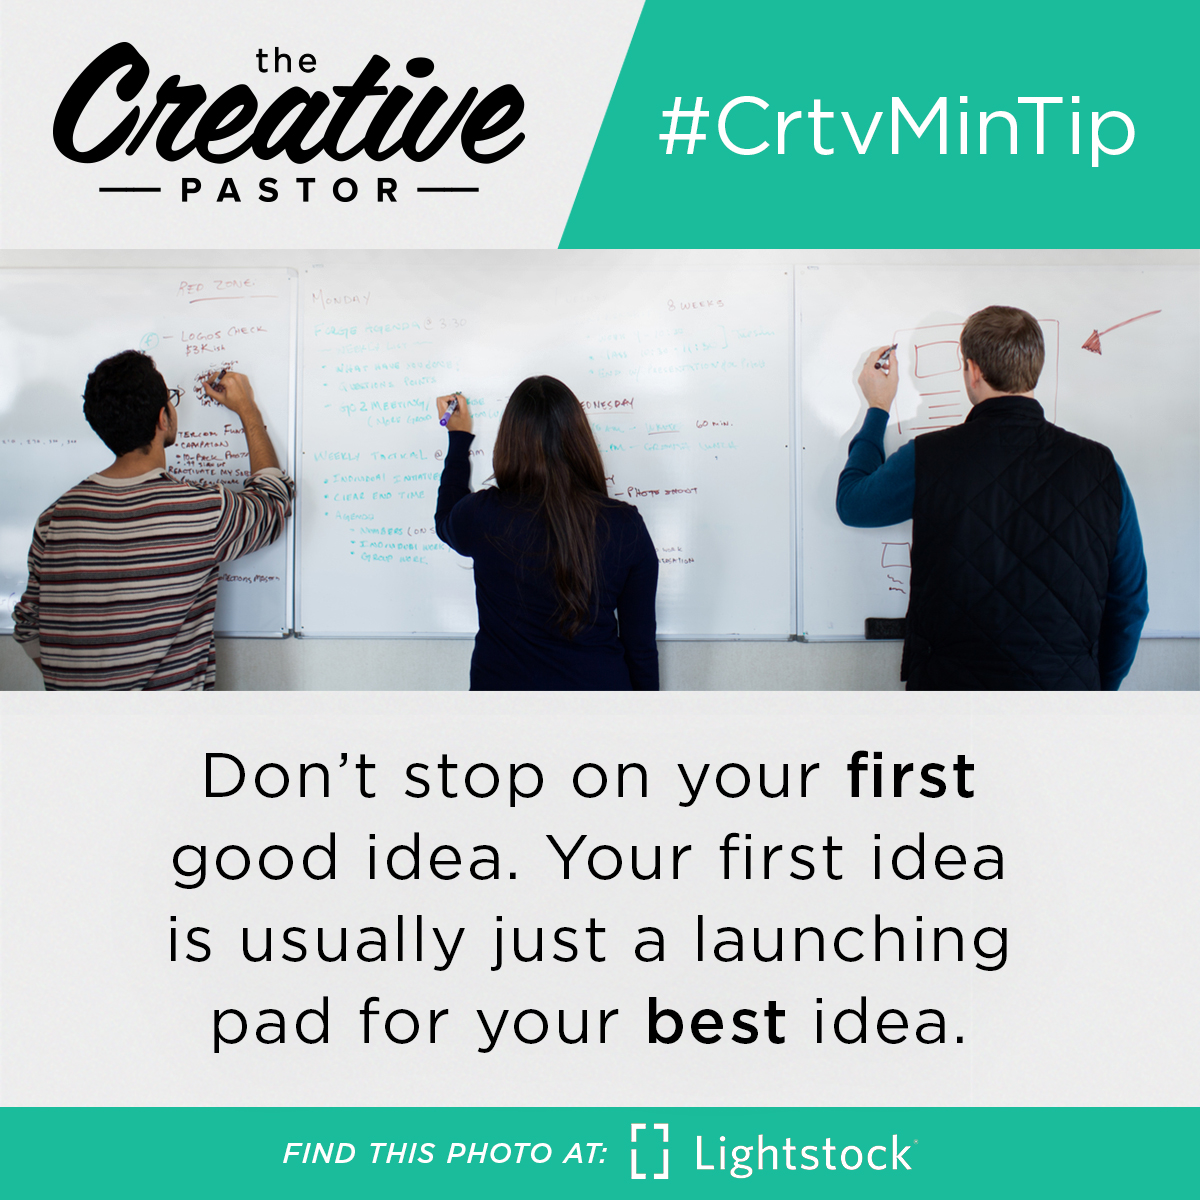 #CrtvMinTip: Don't stop on your first good idea. Your first idea is usually just a launching pad for your best idea.